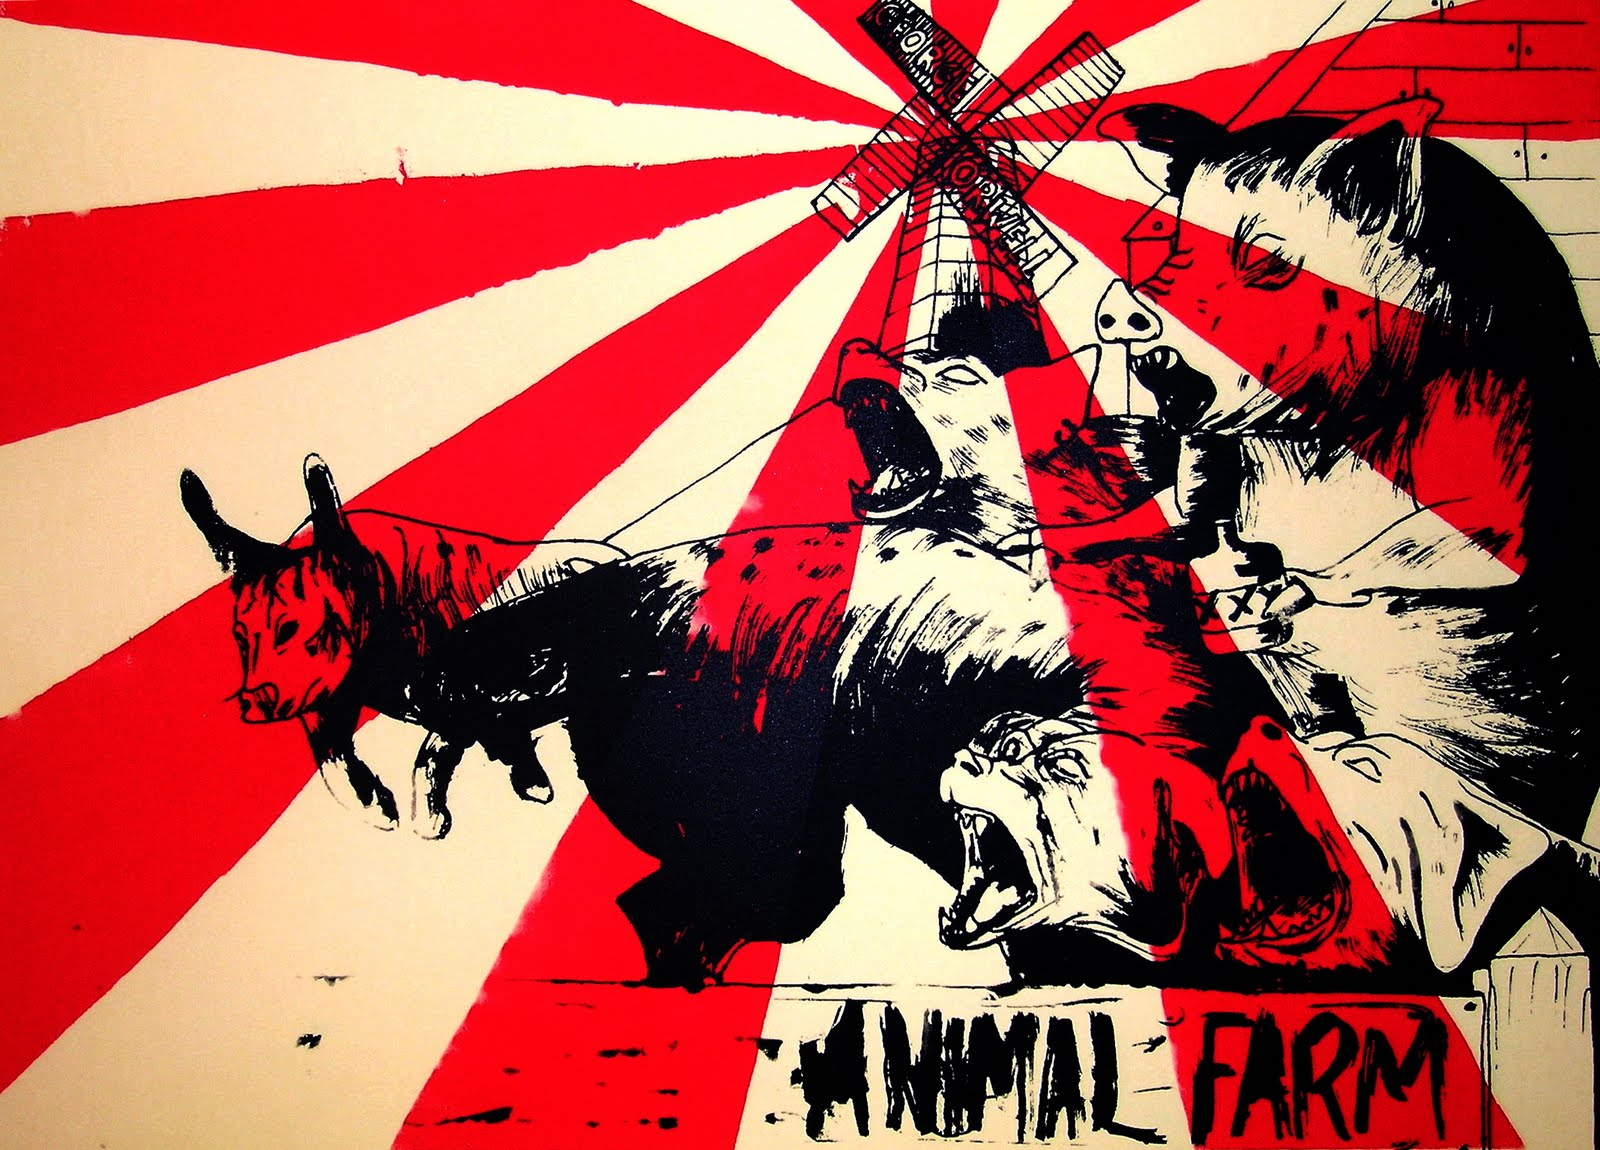 animal farm a book central to the liberal understanding of best animal farm a book central to the liberal understanding of best democratic practice and those things that stand in opposition to it